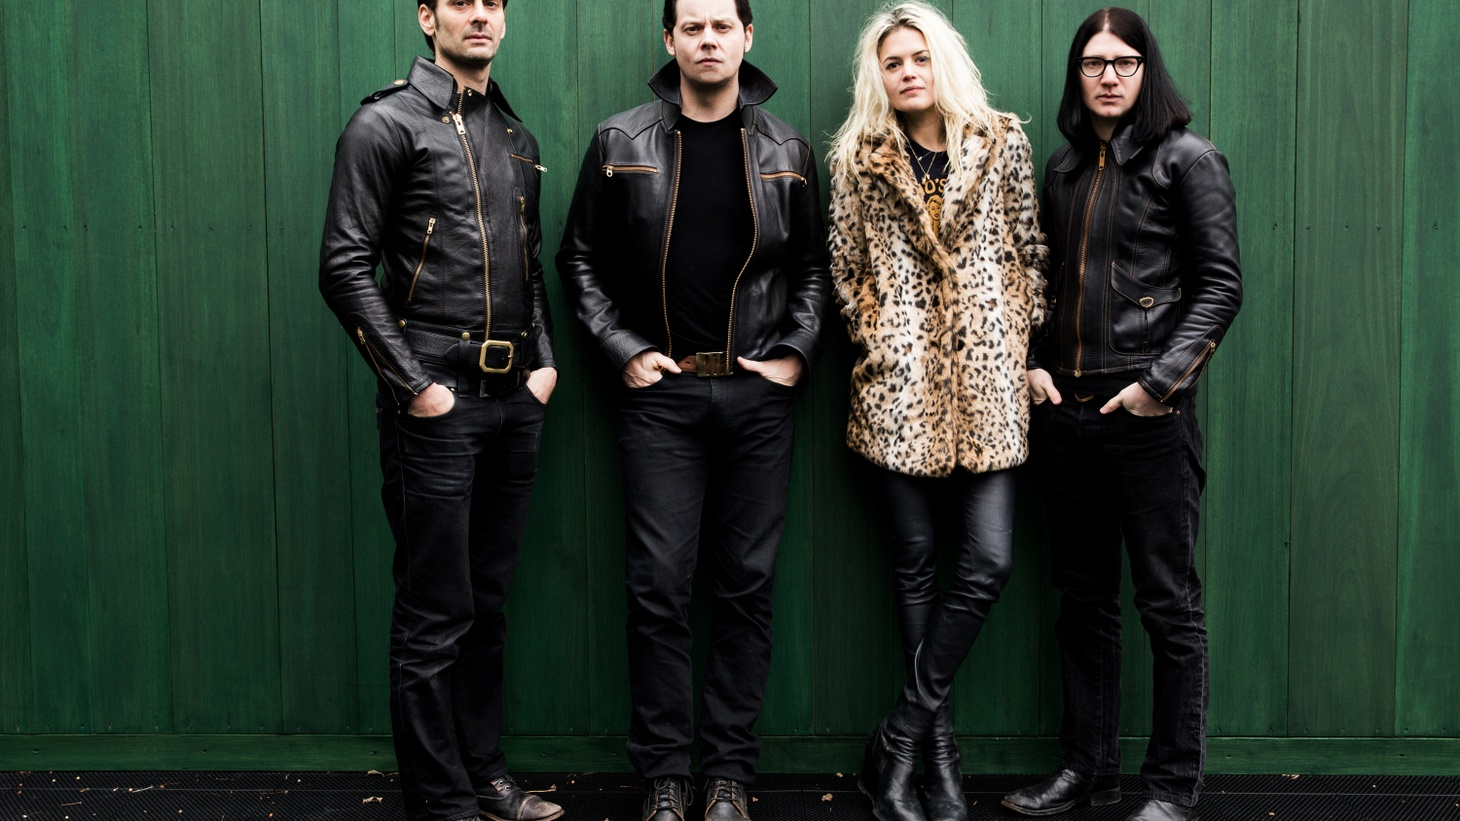 """Supergroup The Dead Weather is back with a long-anticipated full-length album, Recorded in Nashville during breaks in each member's respective bands this explosive outfit keeps its edge with """"I Feel Love (Every Million Miles)."""""""